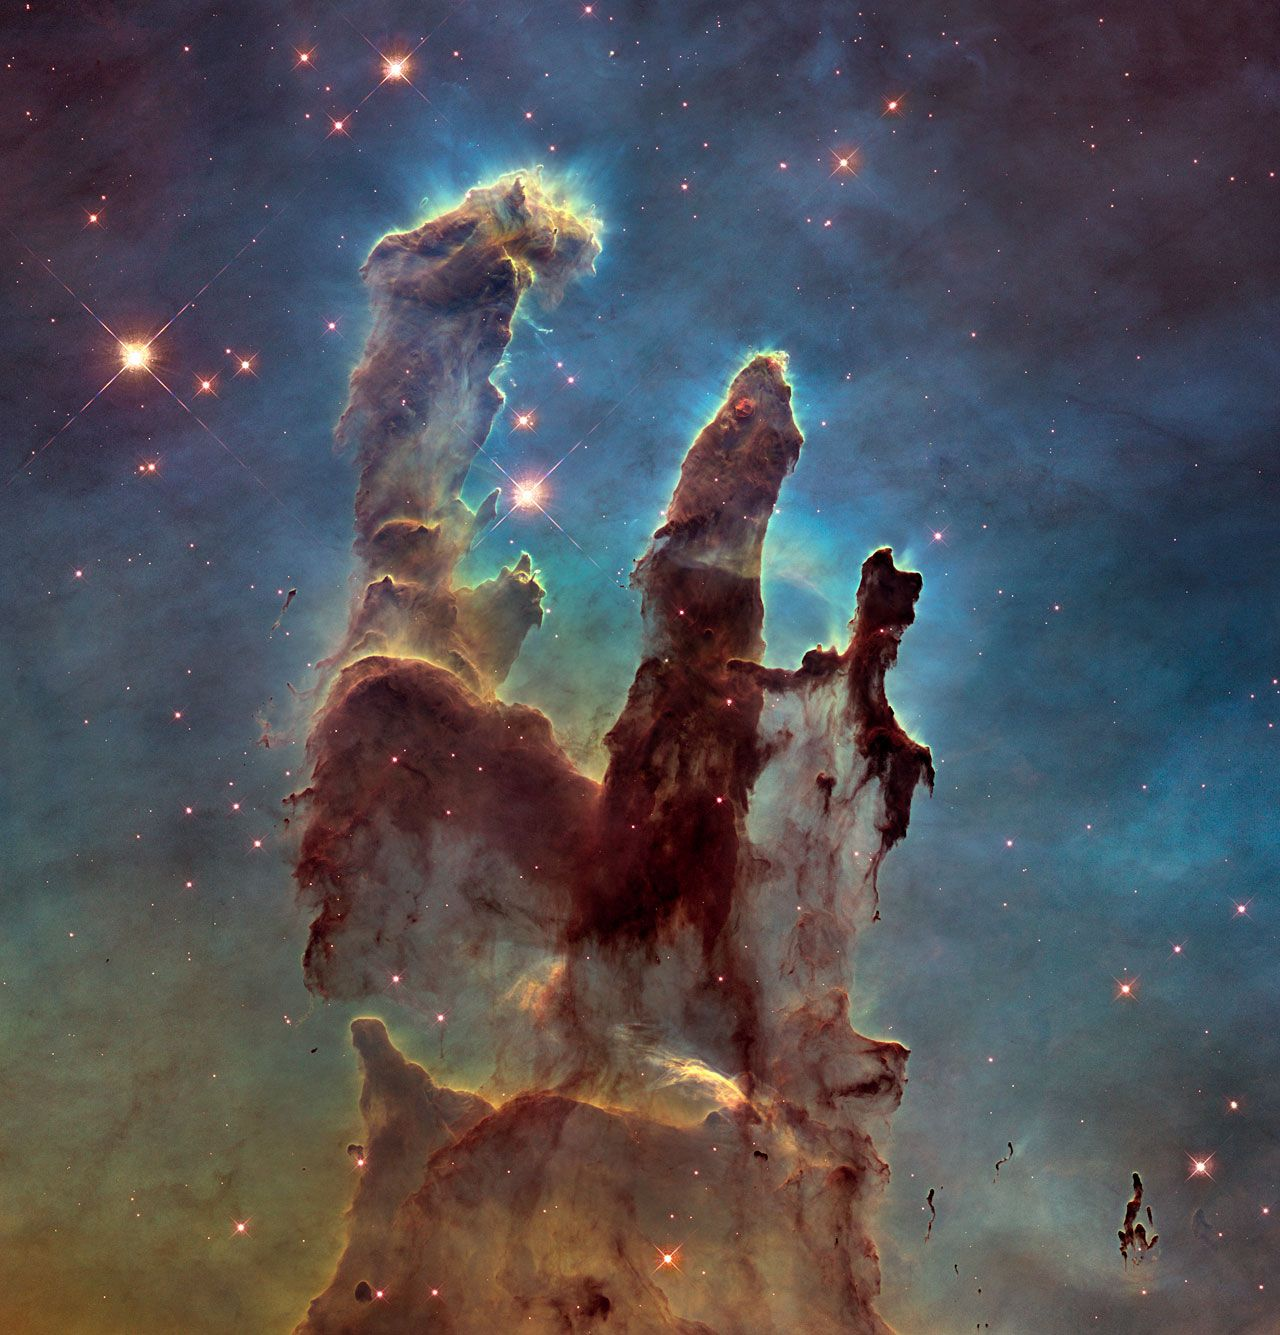 Nasa Releases New High Definition View Of Iconic Pillars Of Creation Photo Astronomy Pictures Space Pictures Hubble Images